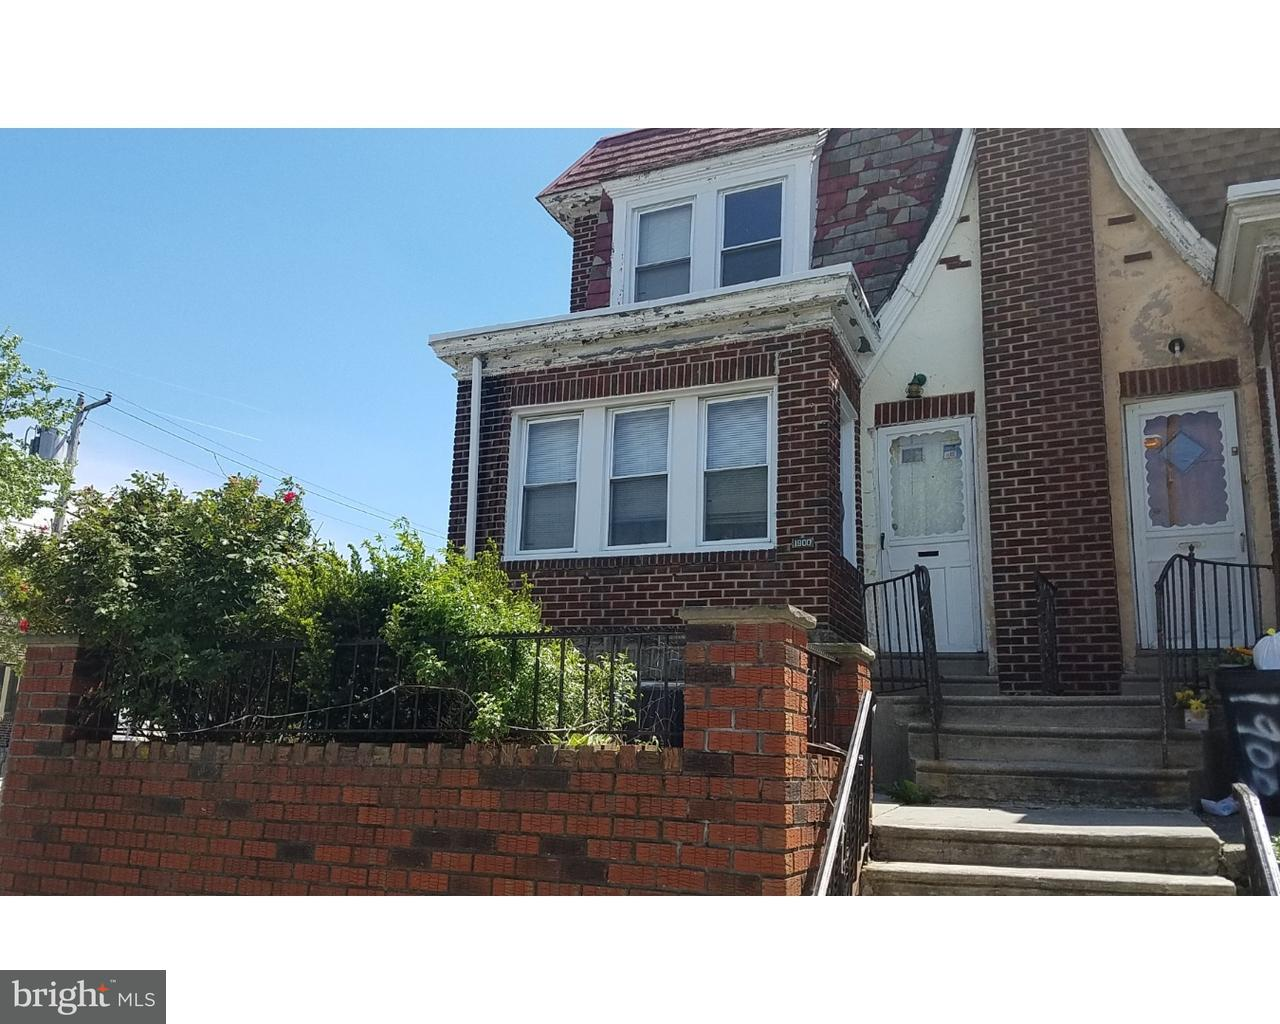 1900 73RD AVE, PHILADELPHIA - Listed at $95,000,